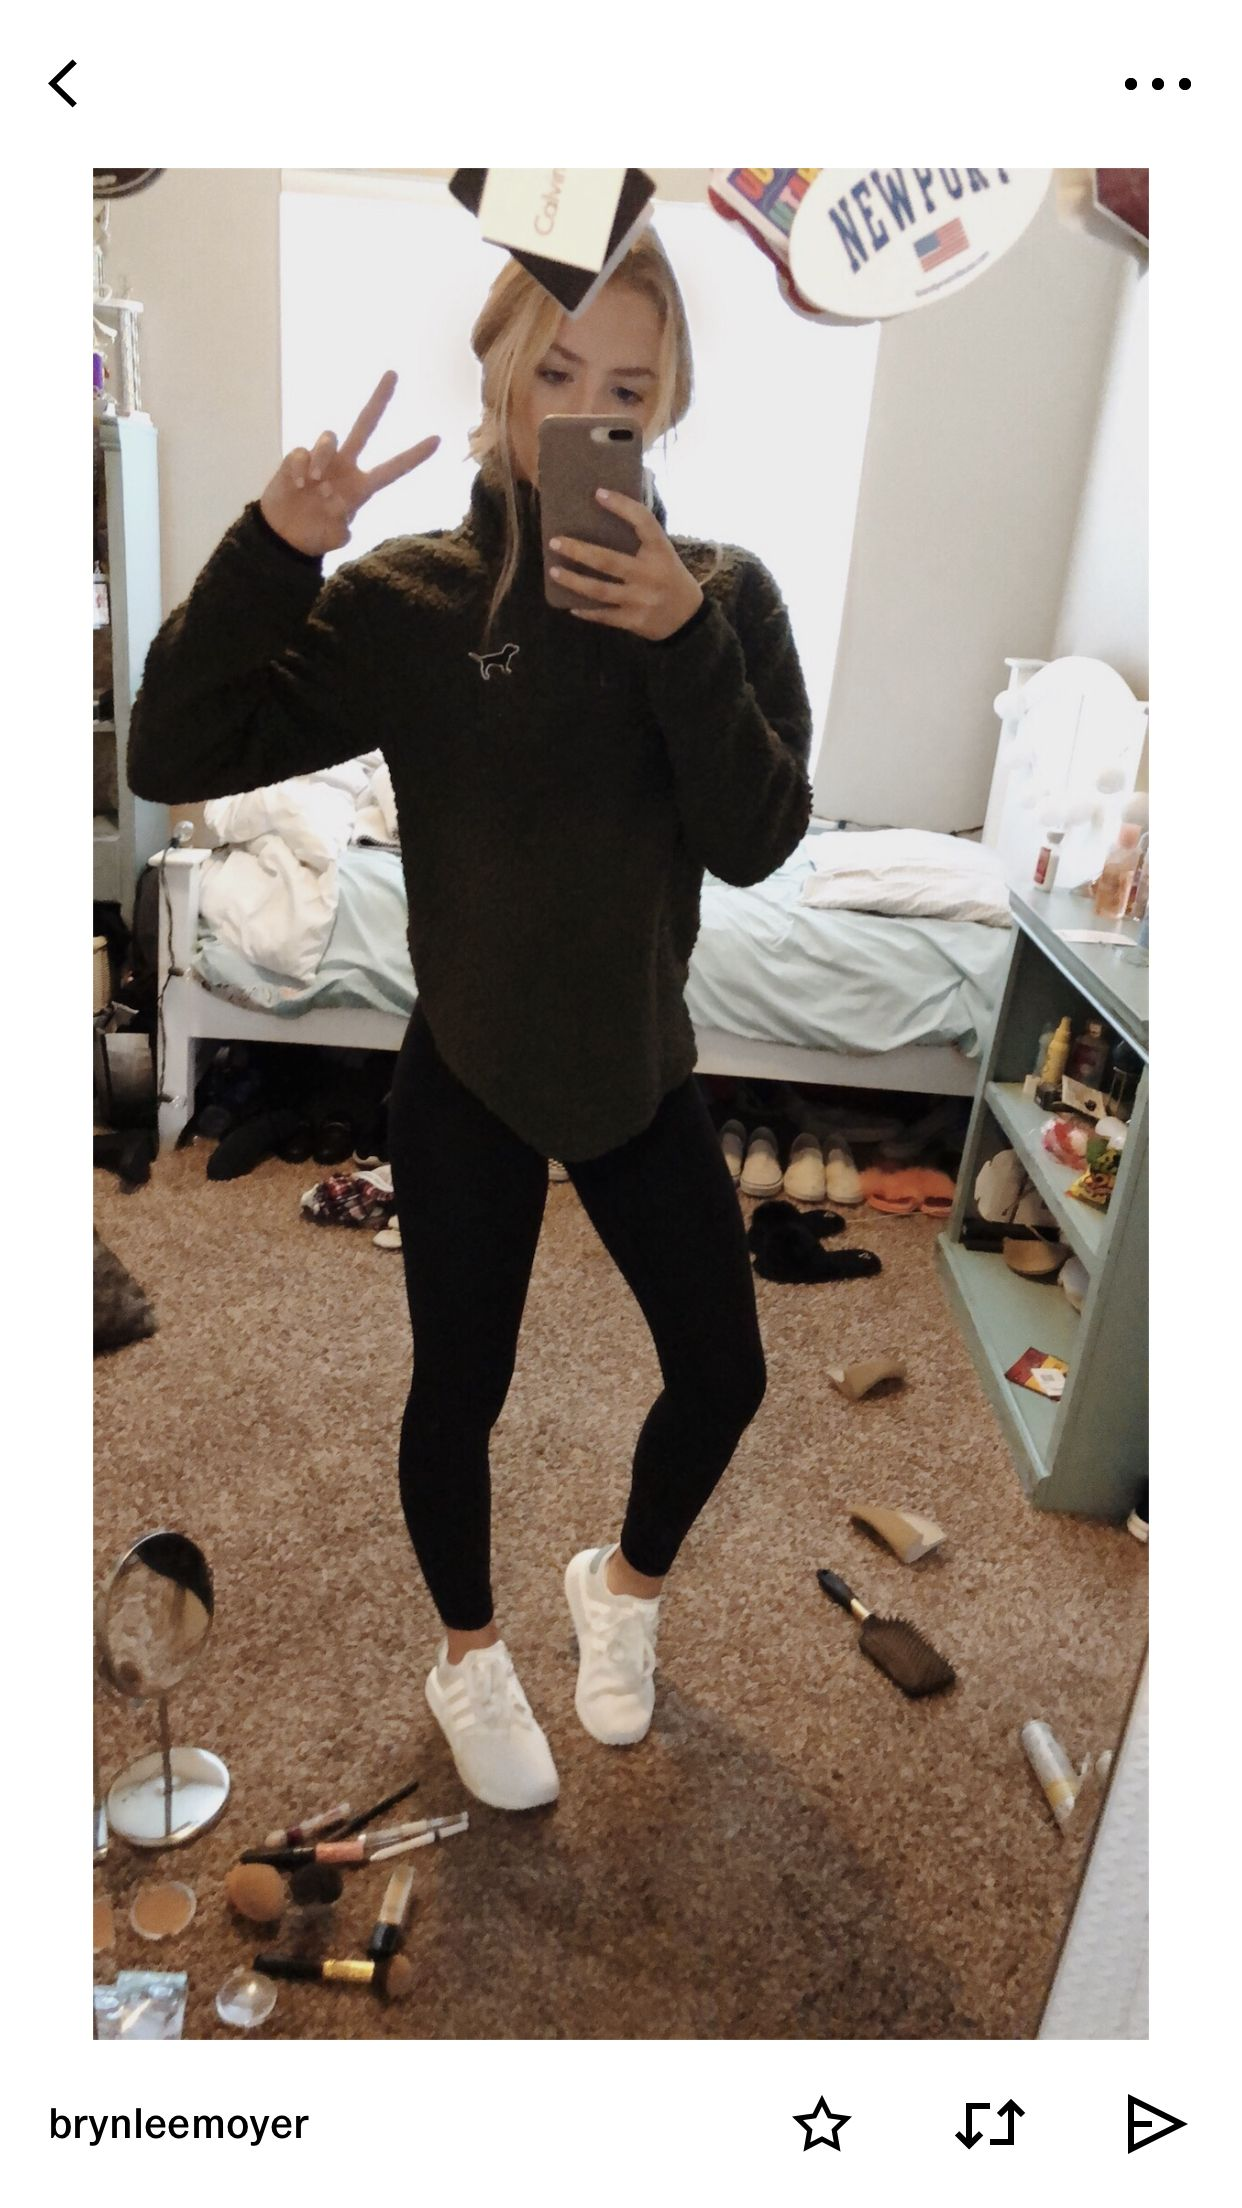 Pin by 𝓌𝒾𝓃𝓃𝒾𝑒 𝓂𝒶𝒹𝒾𝓈𝑜𝓃 on style  Cute lazy outfits